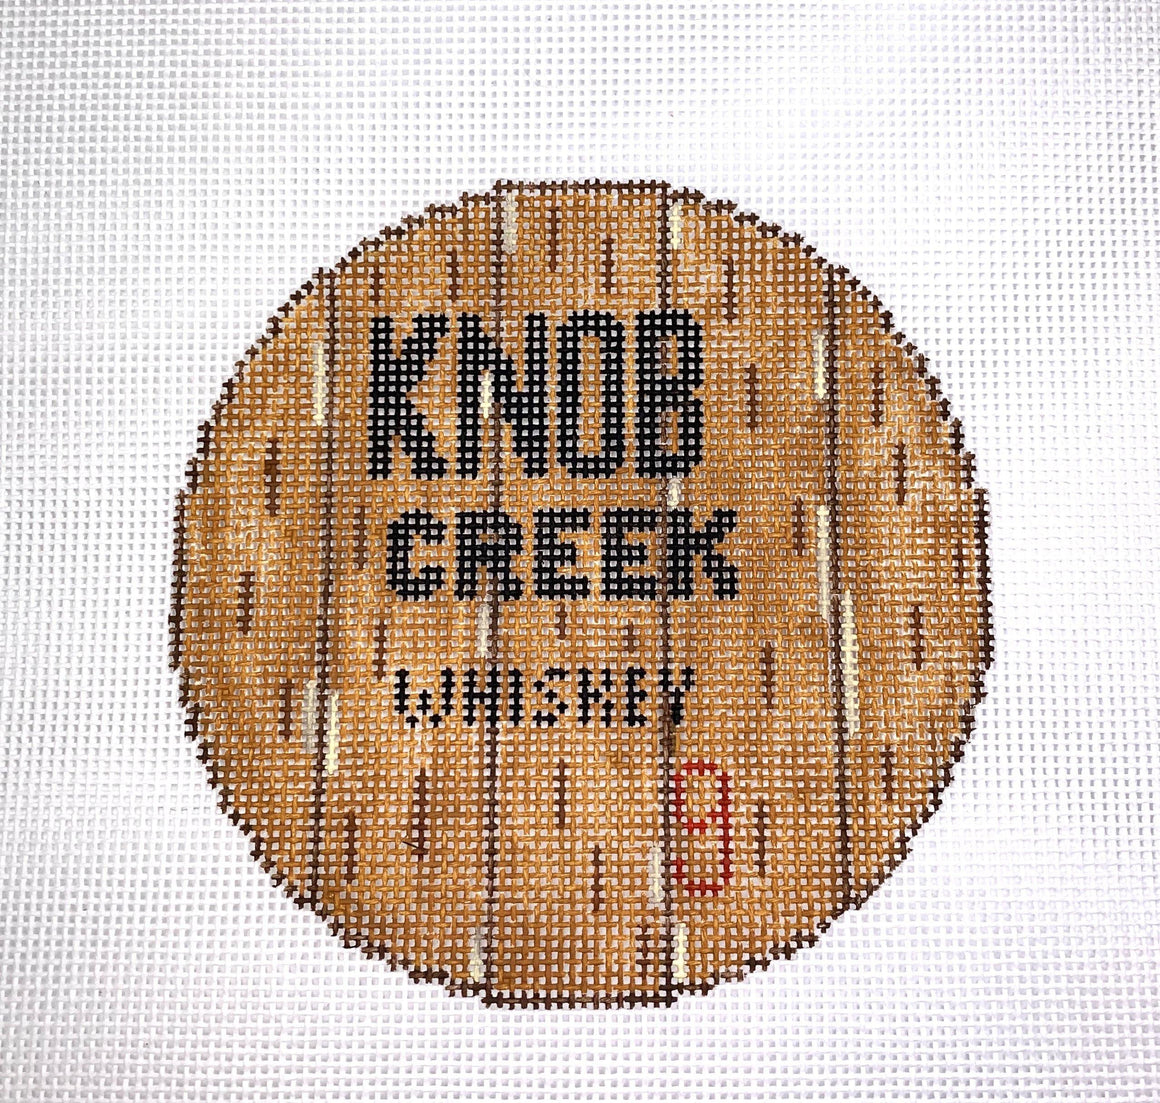 Barrel Head Needlepoint Canvas-Knob Creek - Needlepoint by Laura, LLC